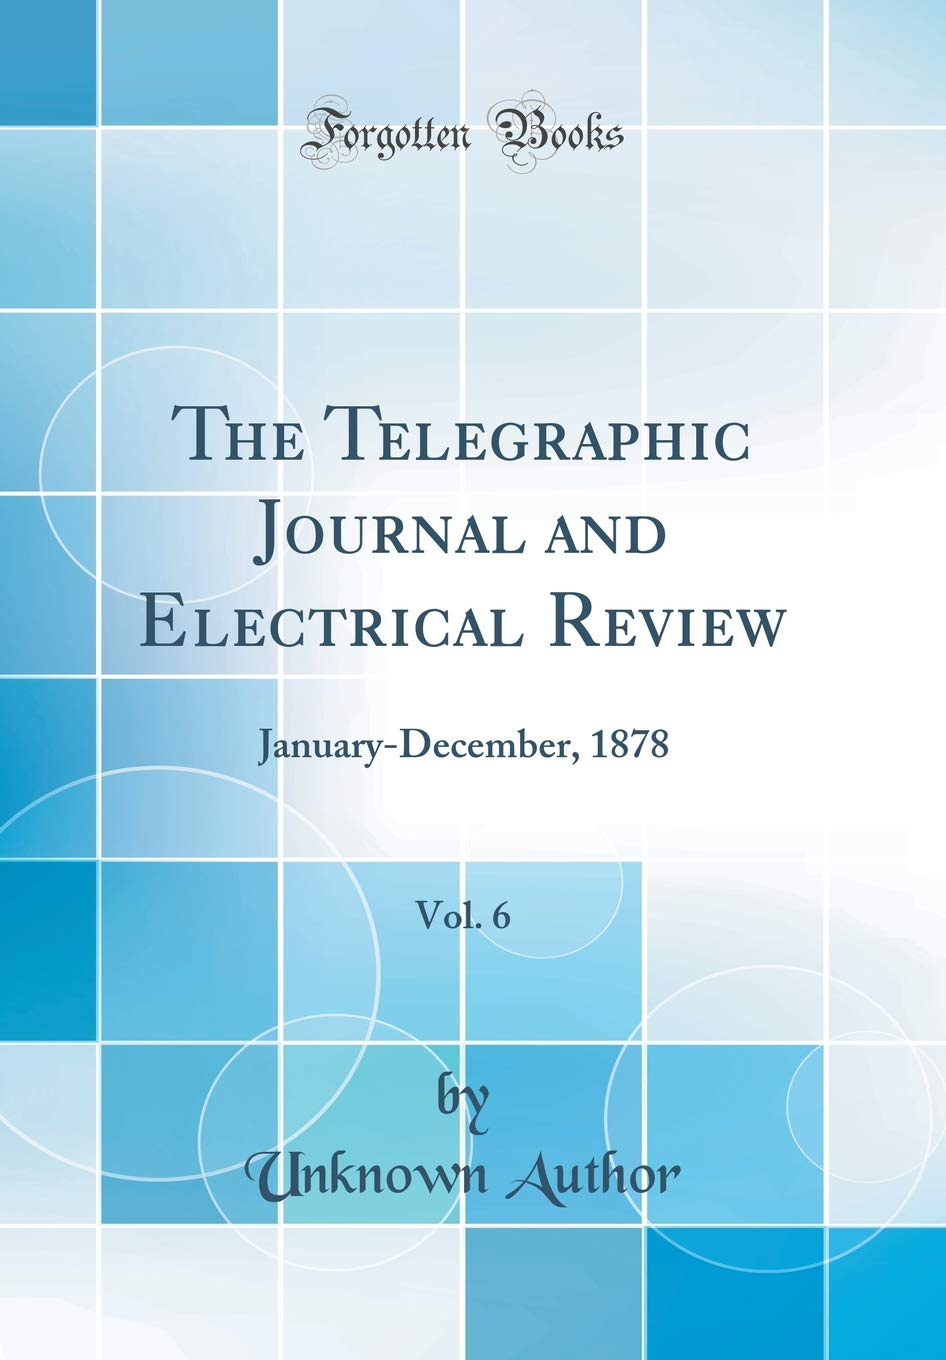 The Telegraphic Journal and Electrical Review, Vol. 6: January-December, 1878 (Classic Reprint) pdf